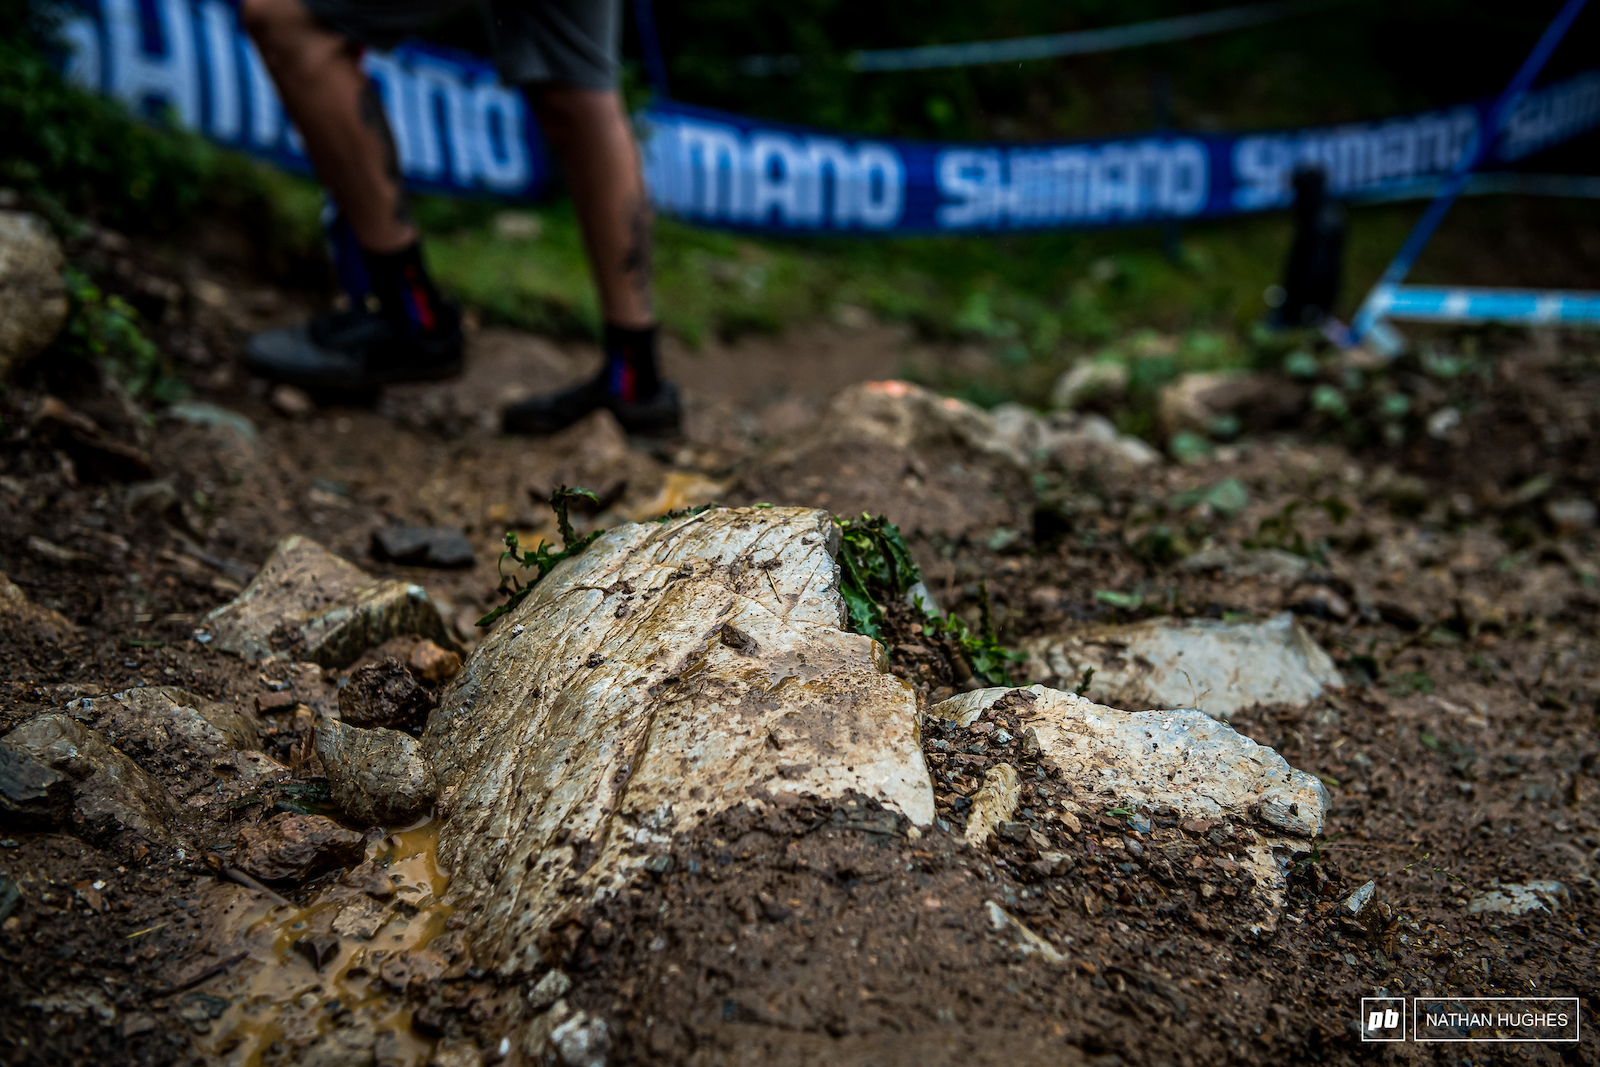 The Lenzerheide rocks have pretty minimal grip especially with a thin layer of slimy mud covering them.